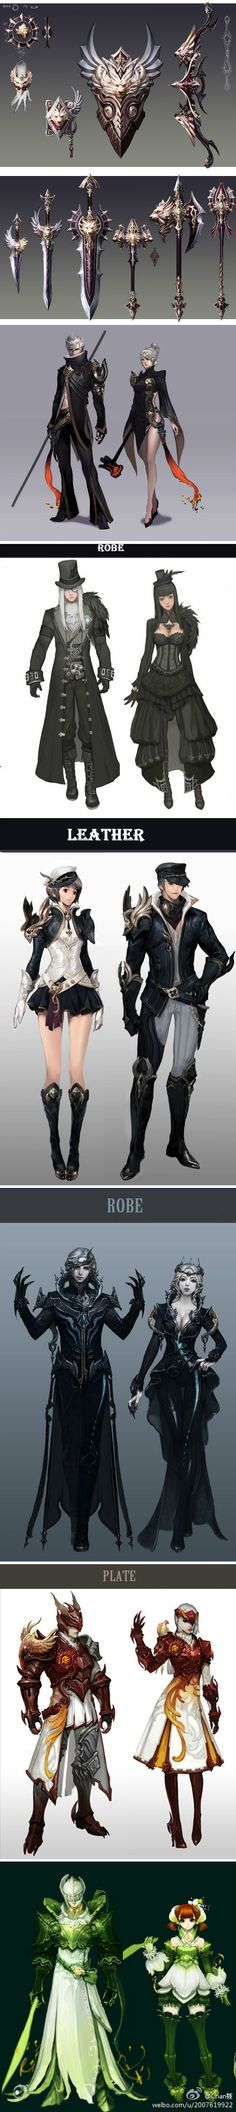 Gorgeous armor and weapon designs